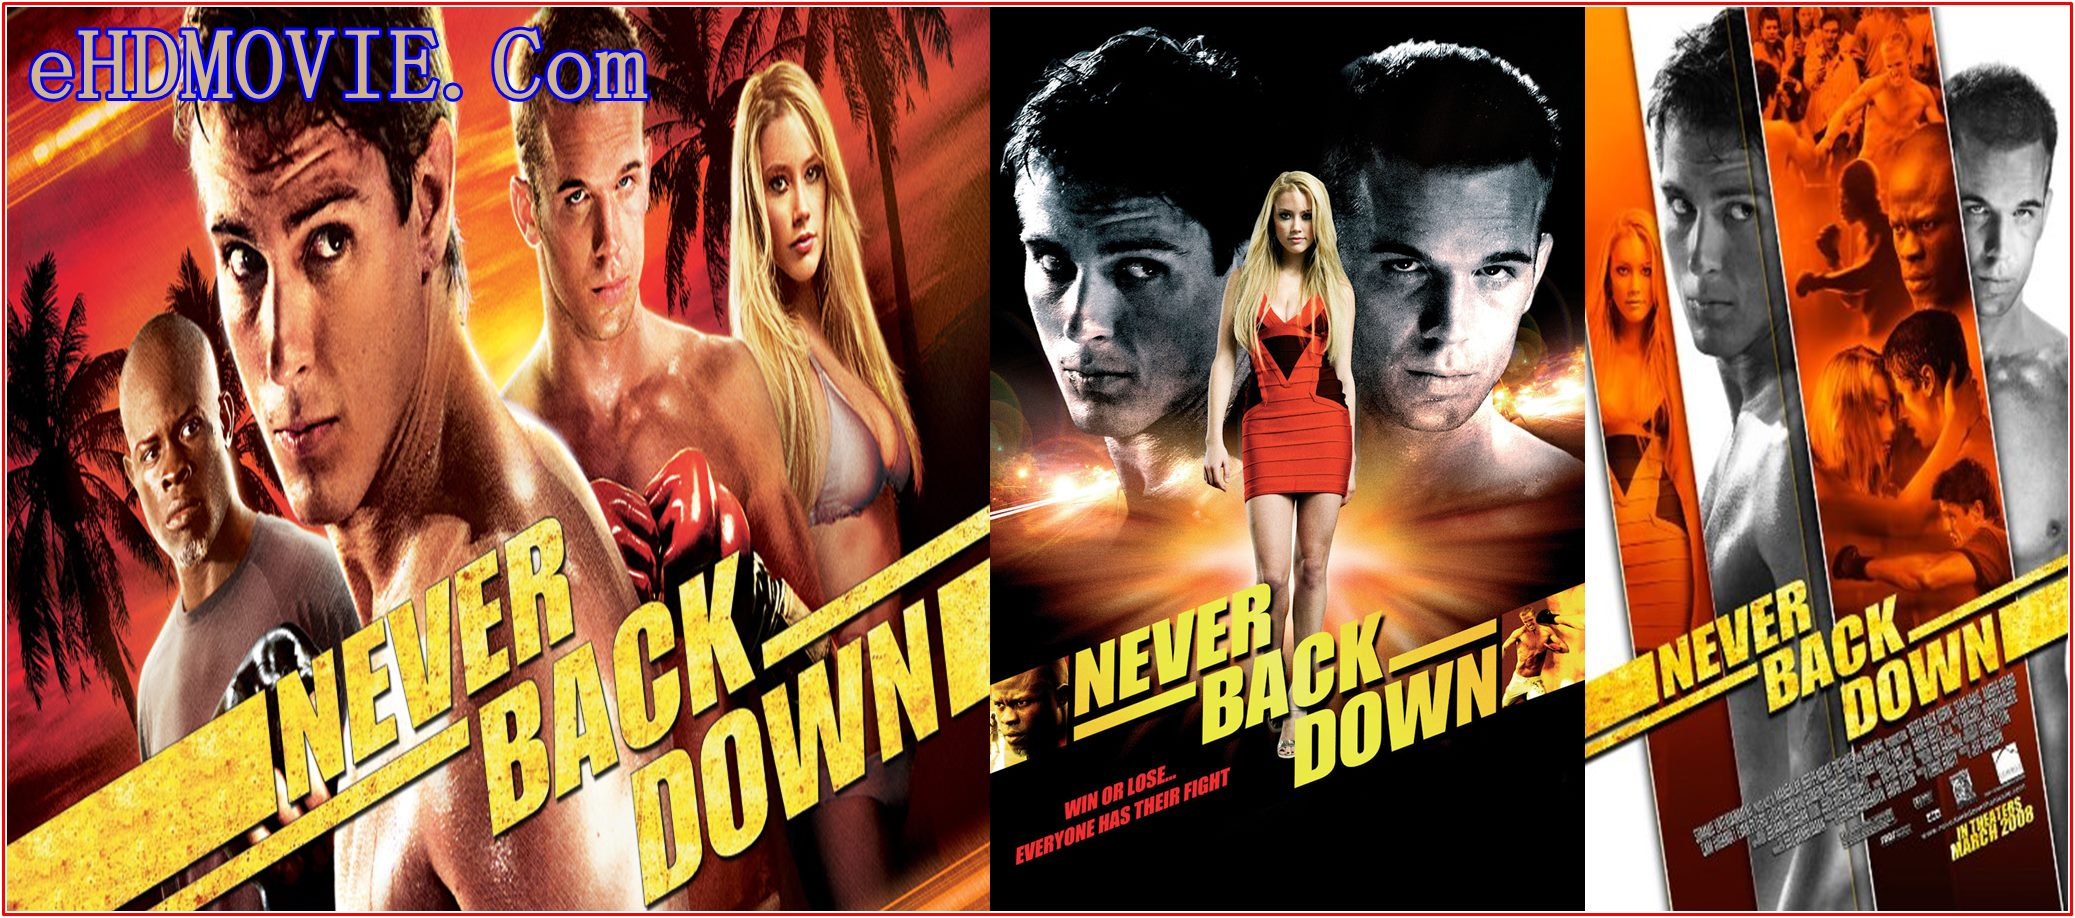 Never Back Down 2008 Full Movie English 720p – 480p ORG BRRip 400MB – 800MB ESubs Free Download